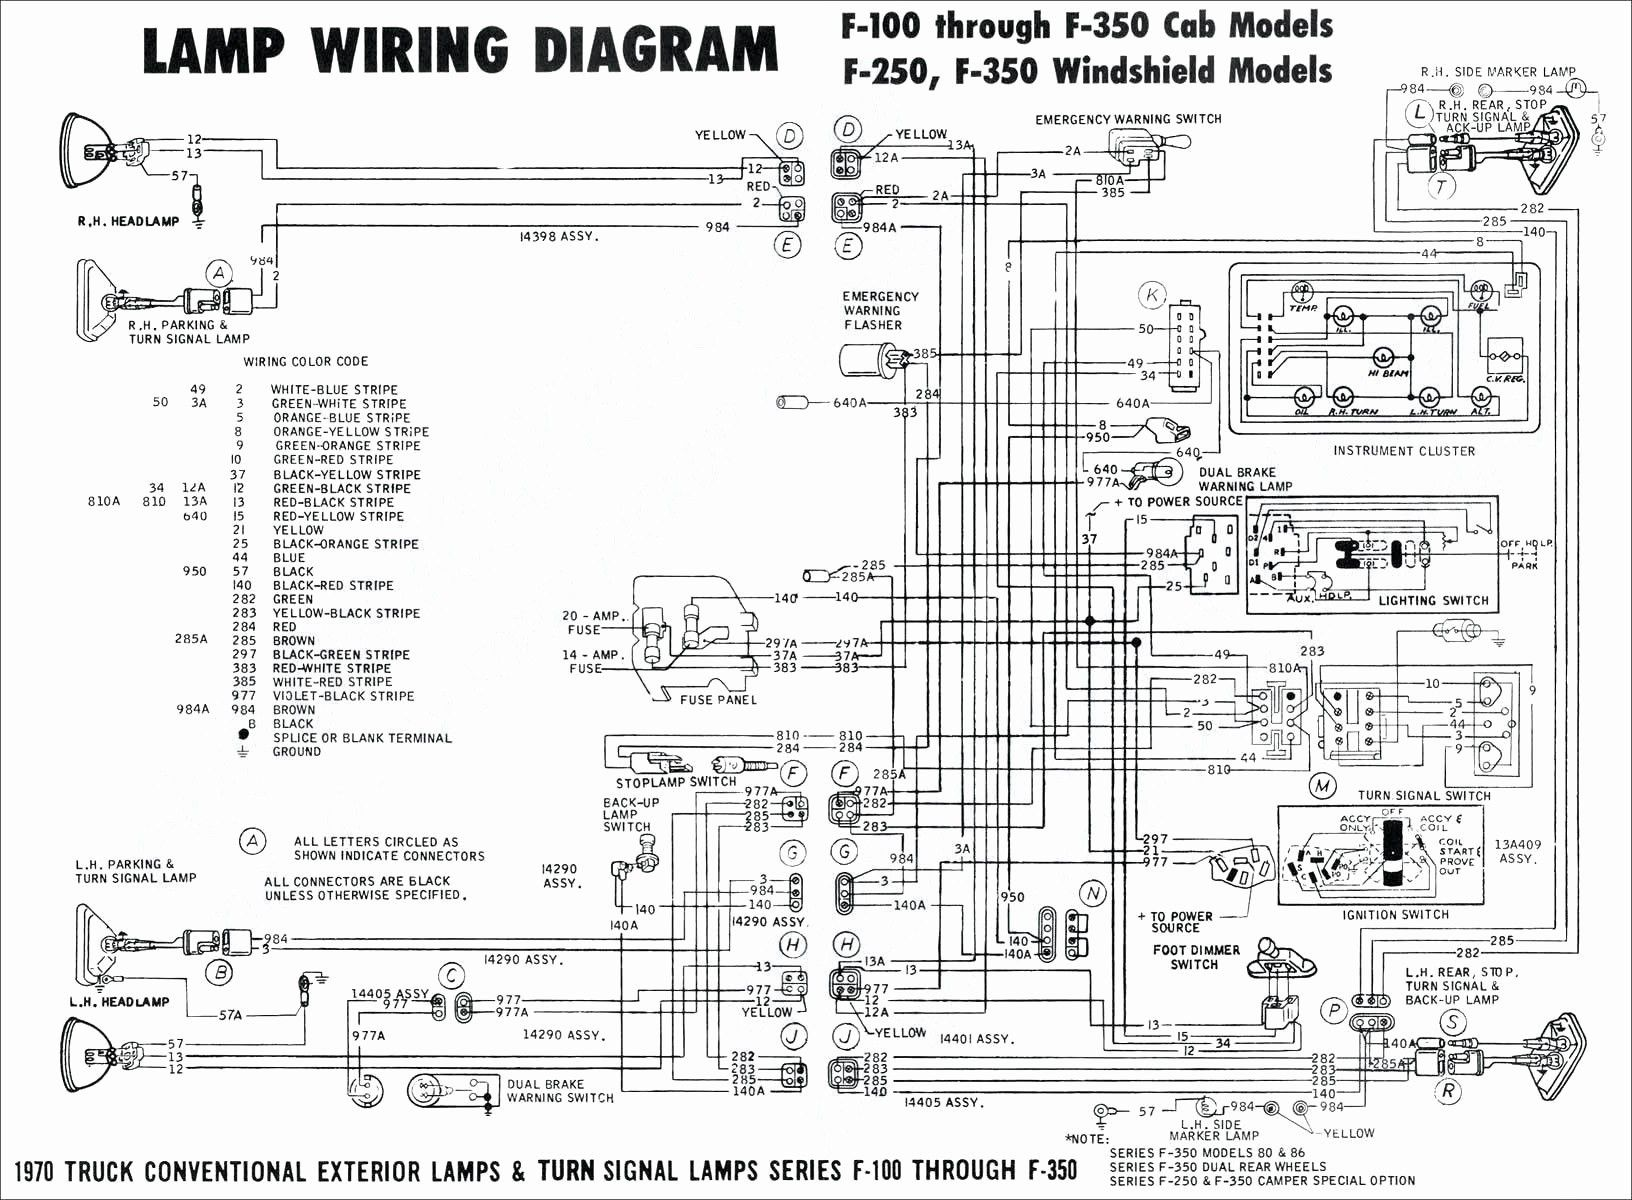 Inspirational Vespa Light Switch Wiring Diagram #diagrams